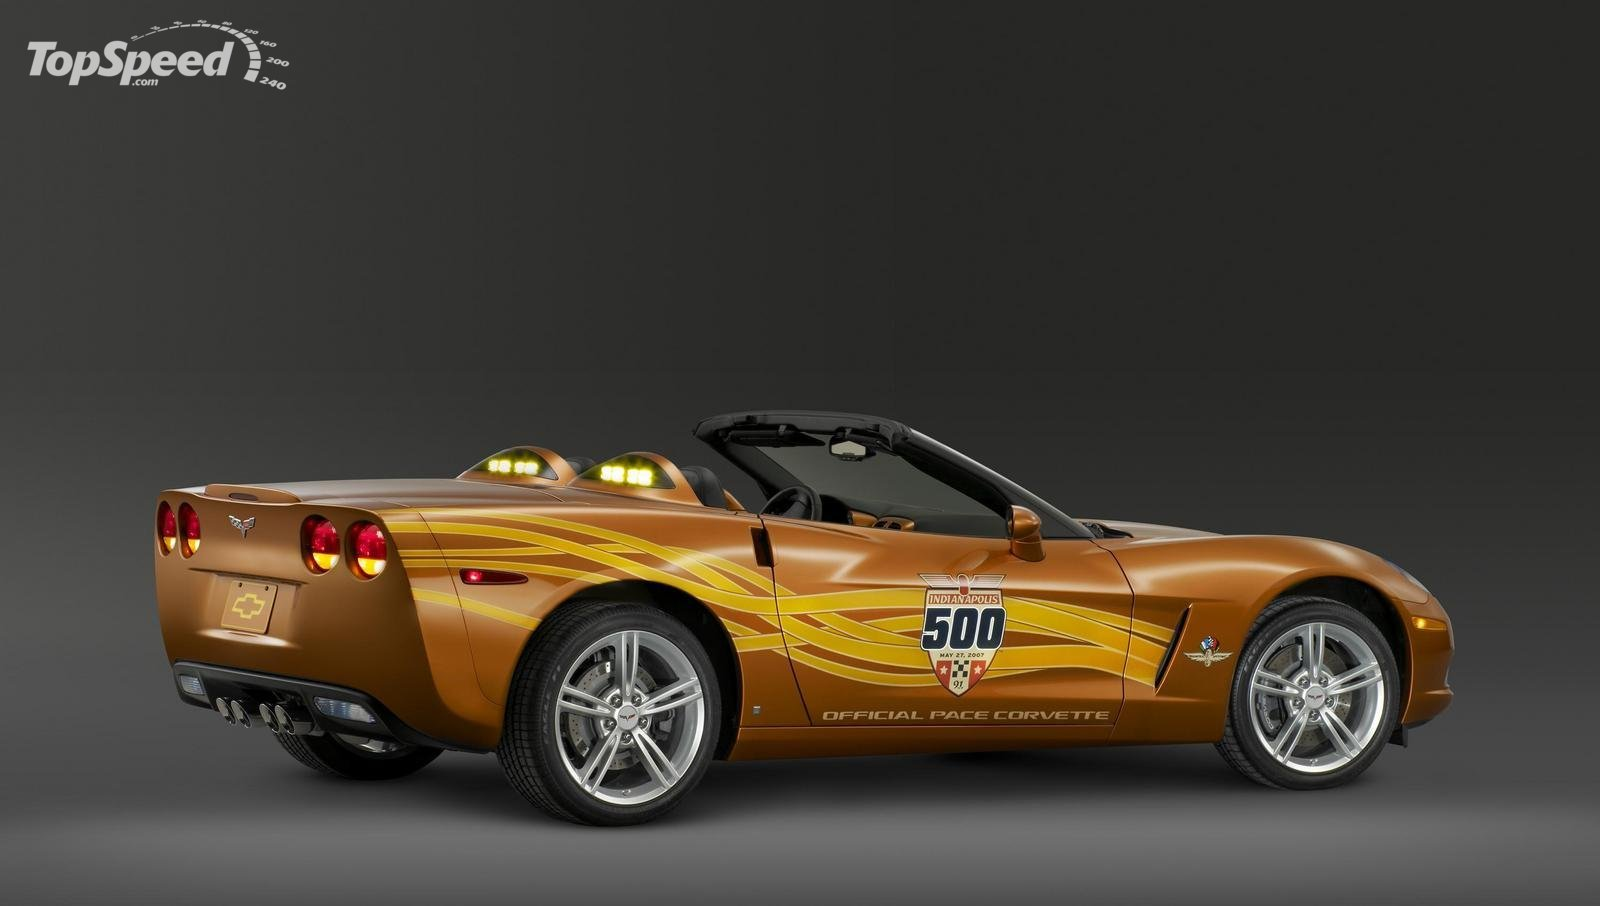 2007 chevrolet corvette indianapolis 500 pace car edition picture 144205 car review top speed. Black Bedroom Furniture Sets. Home Design Ideas